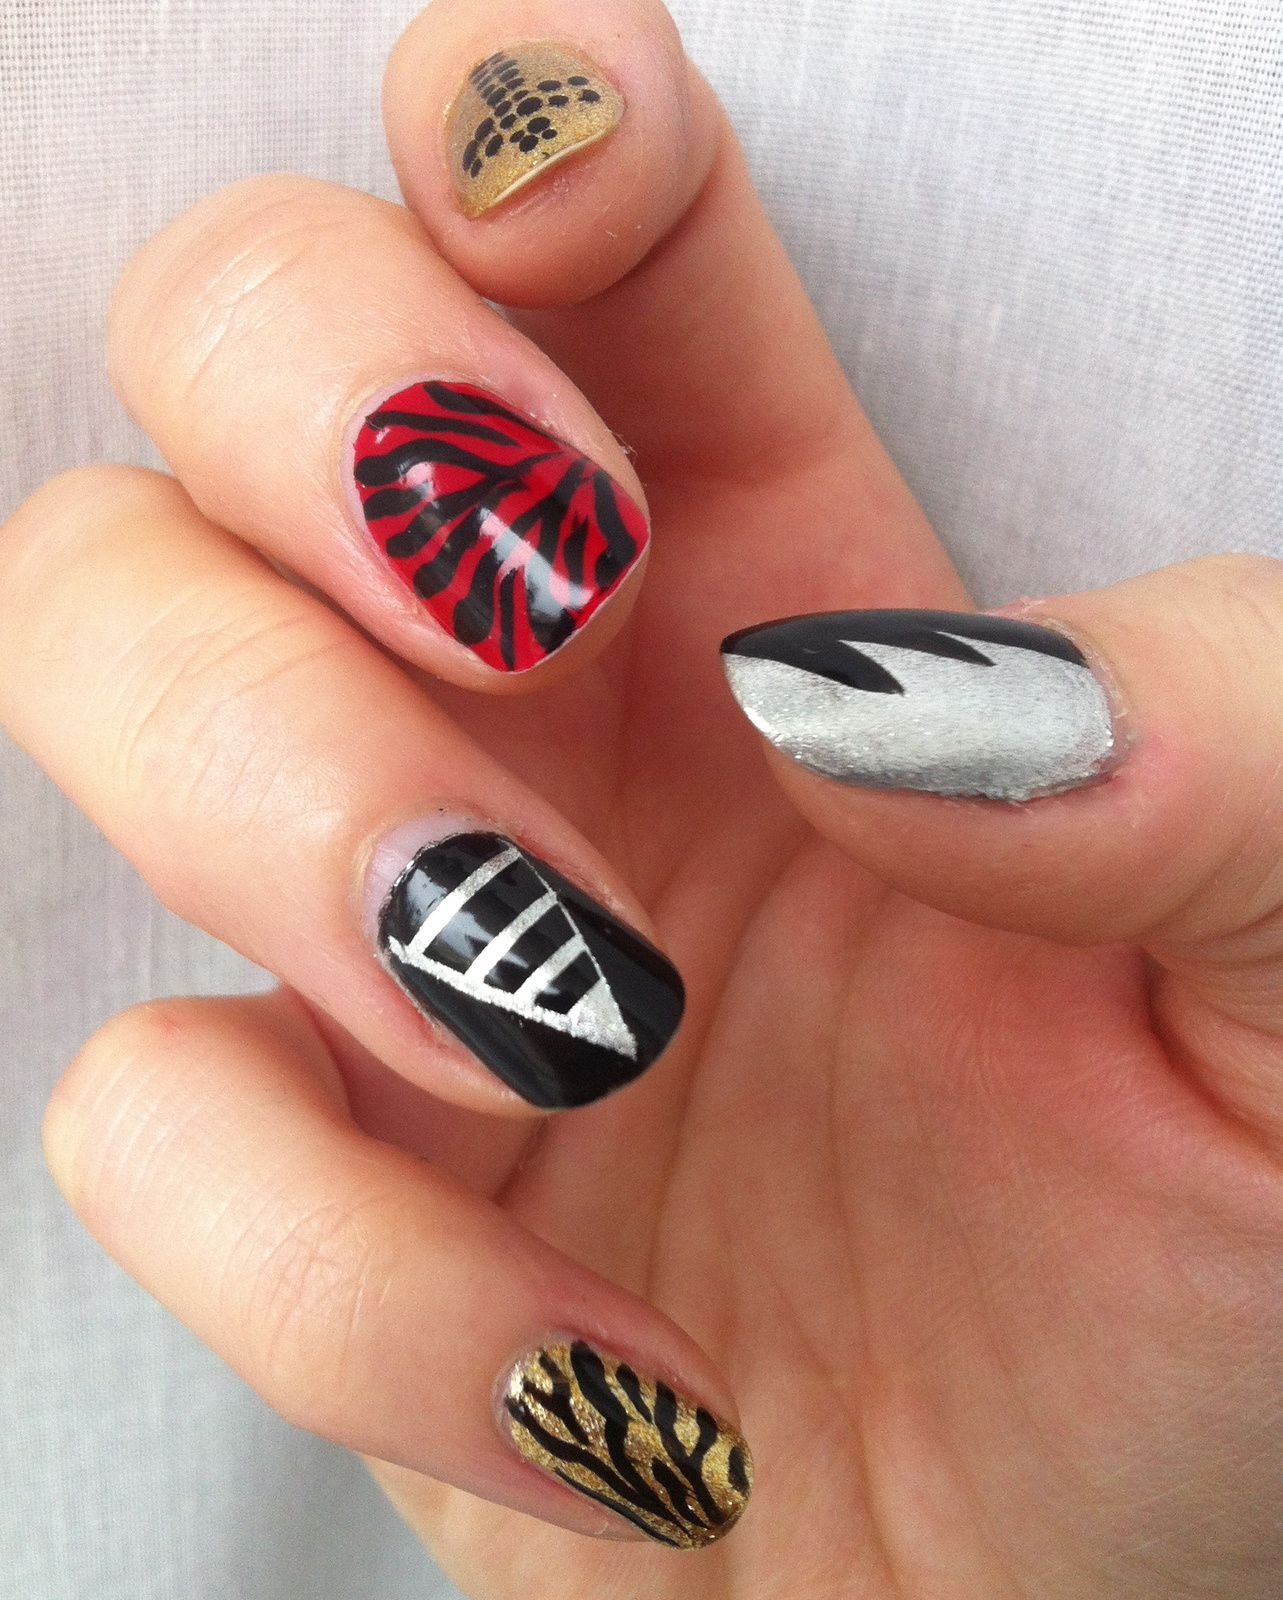 nailstorming rock n roll yeaaahh